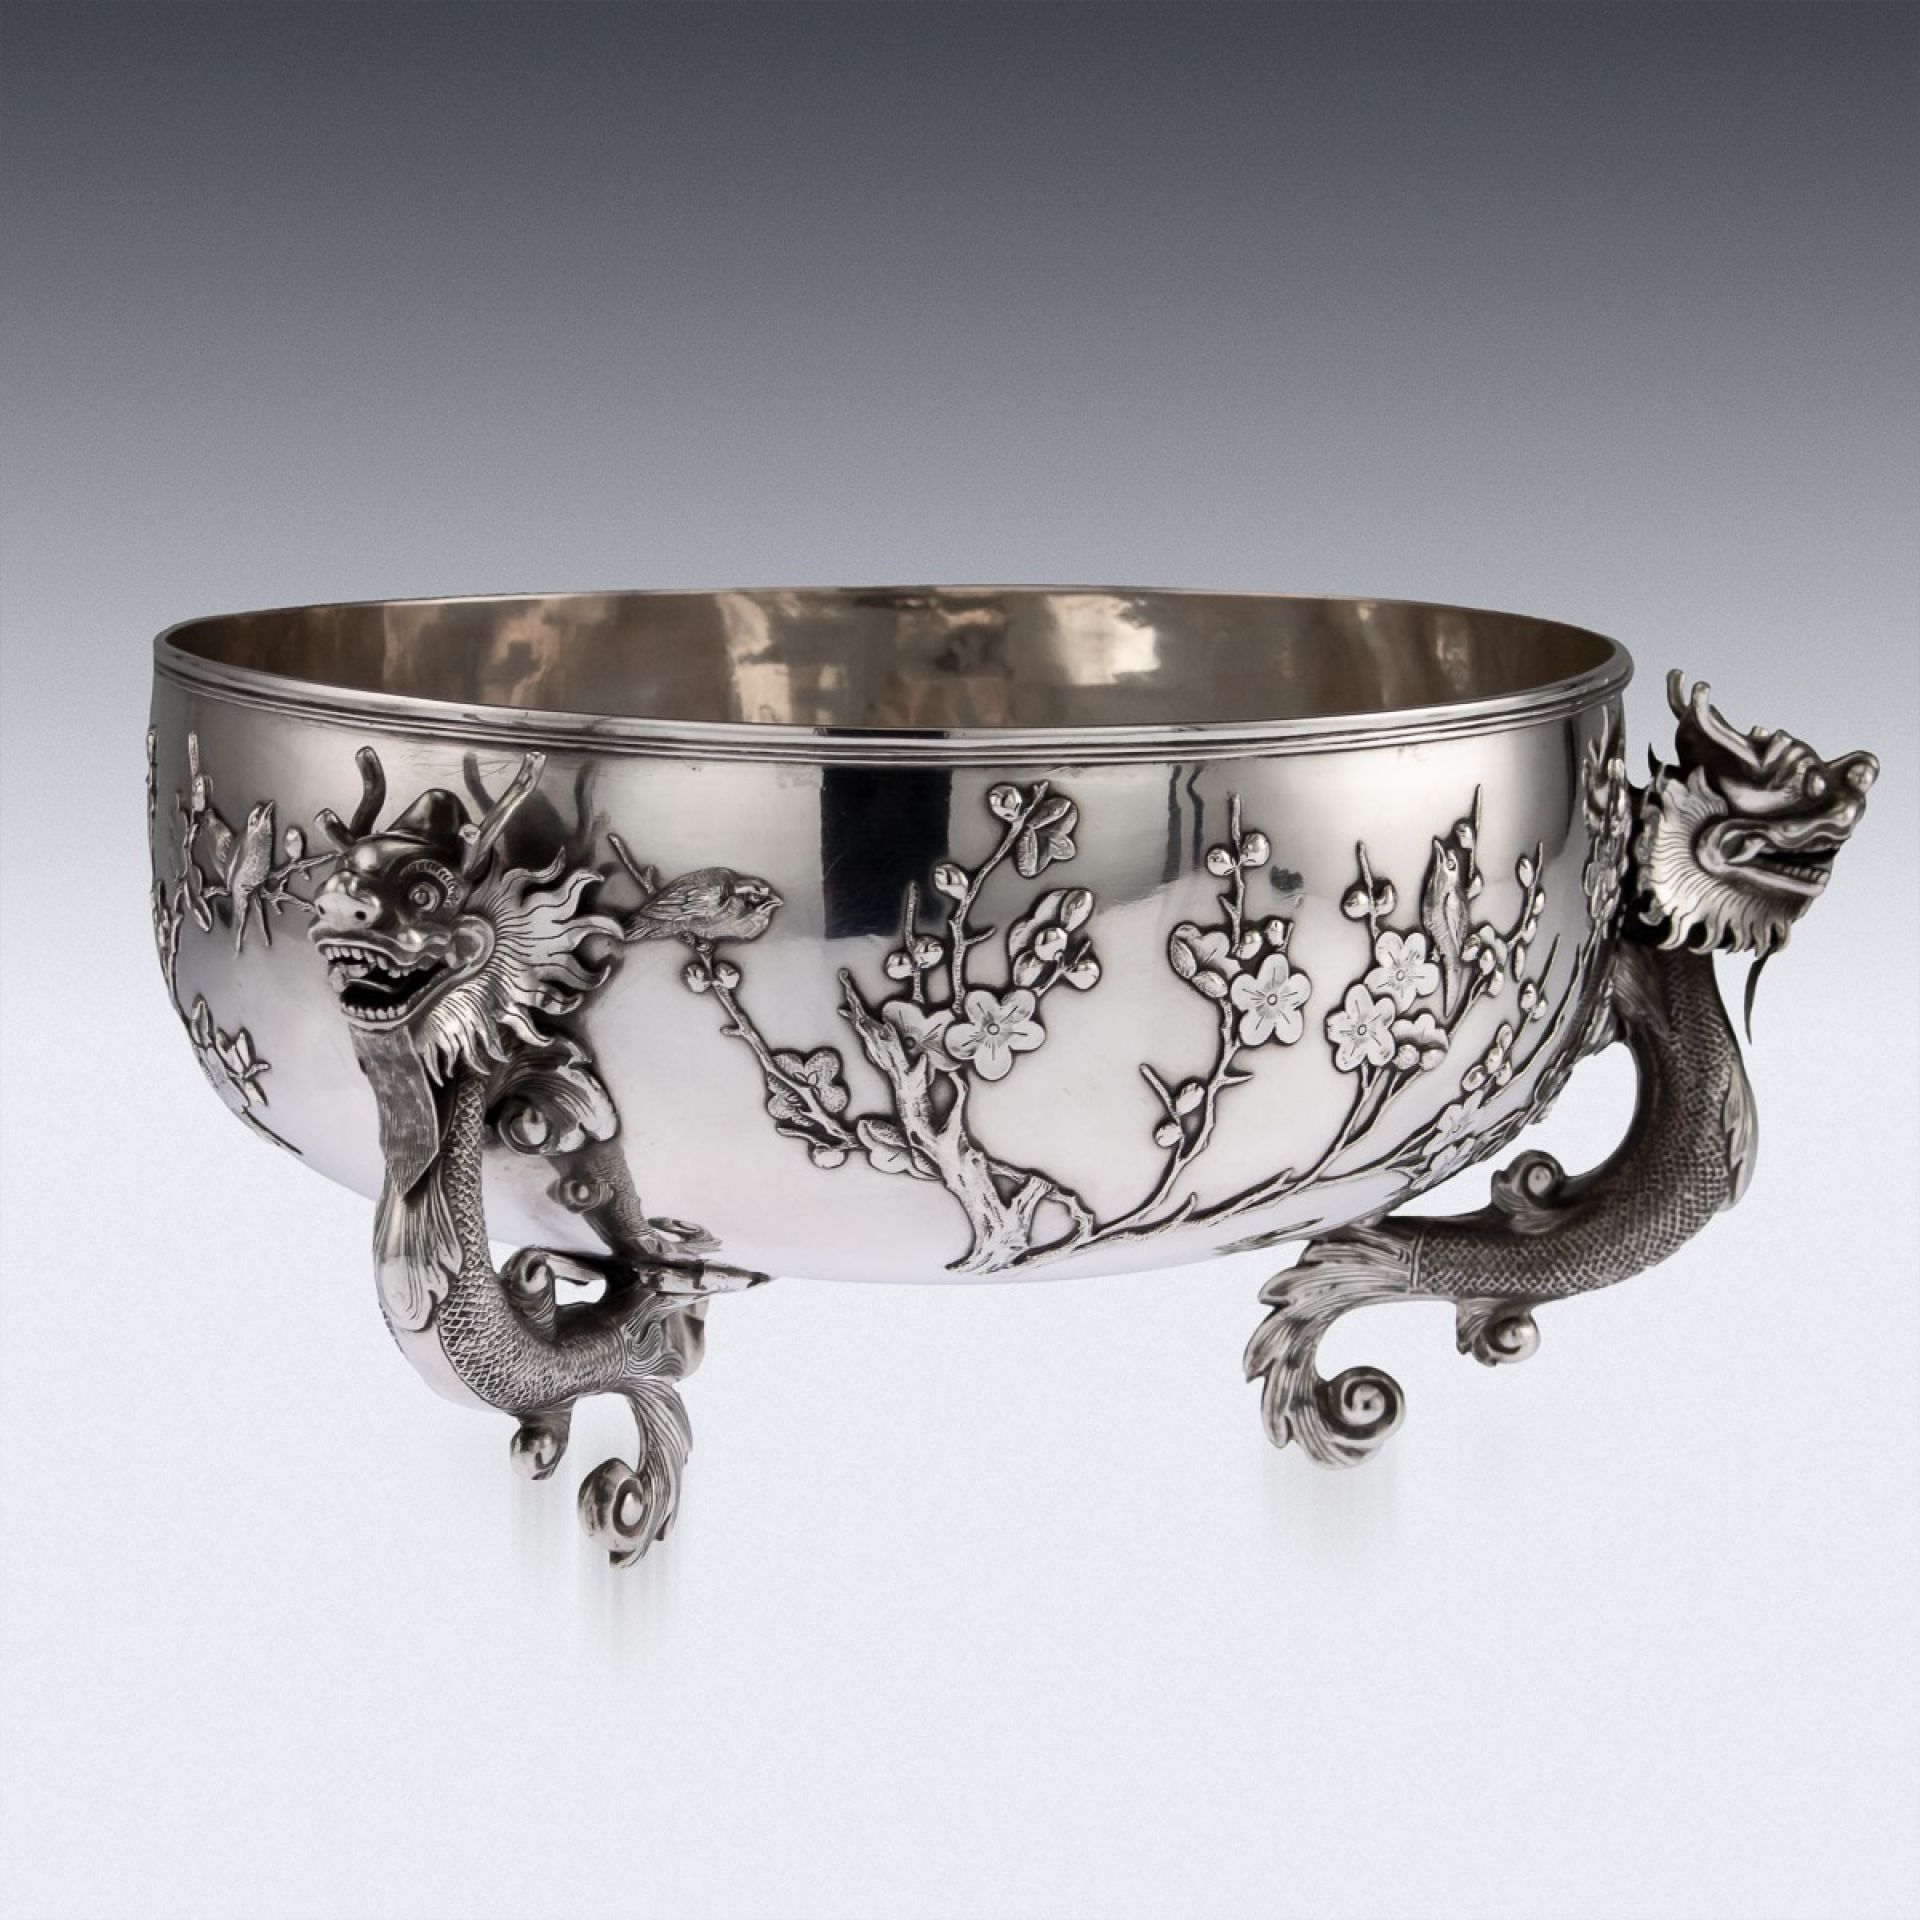 ANTIQUE 19thC CHINESE EXPORT SOLID SILVER DRAGON BOWL, LUEN WO c.1890